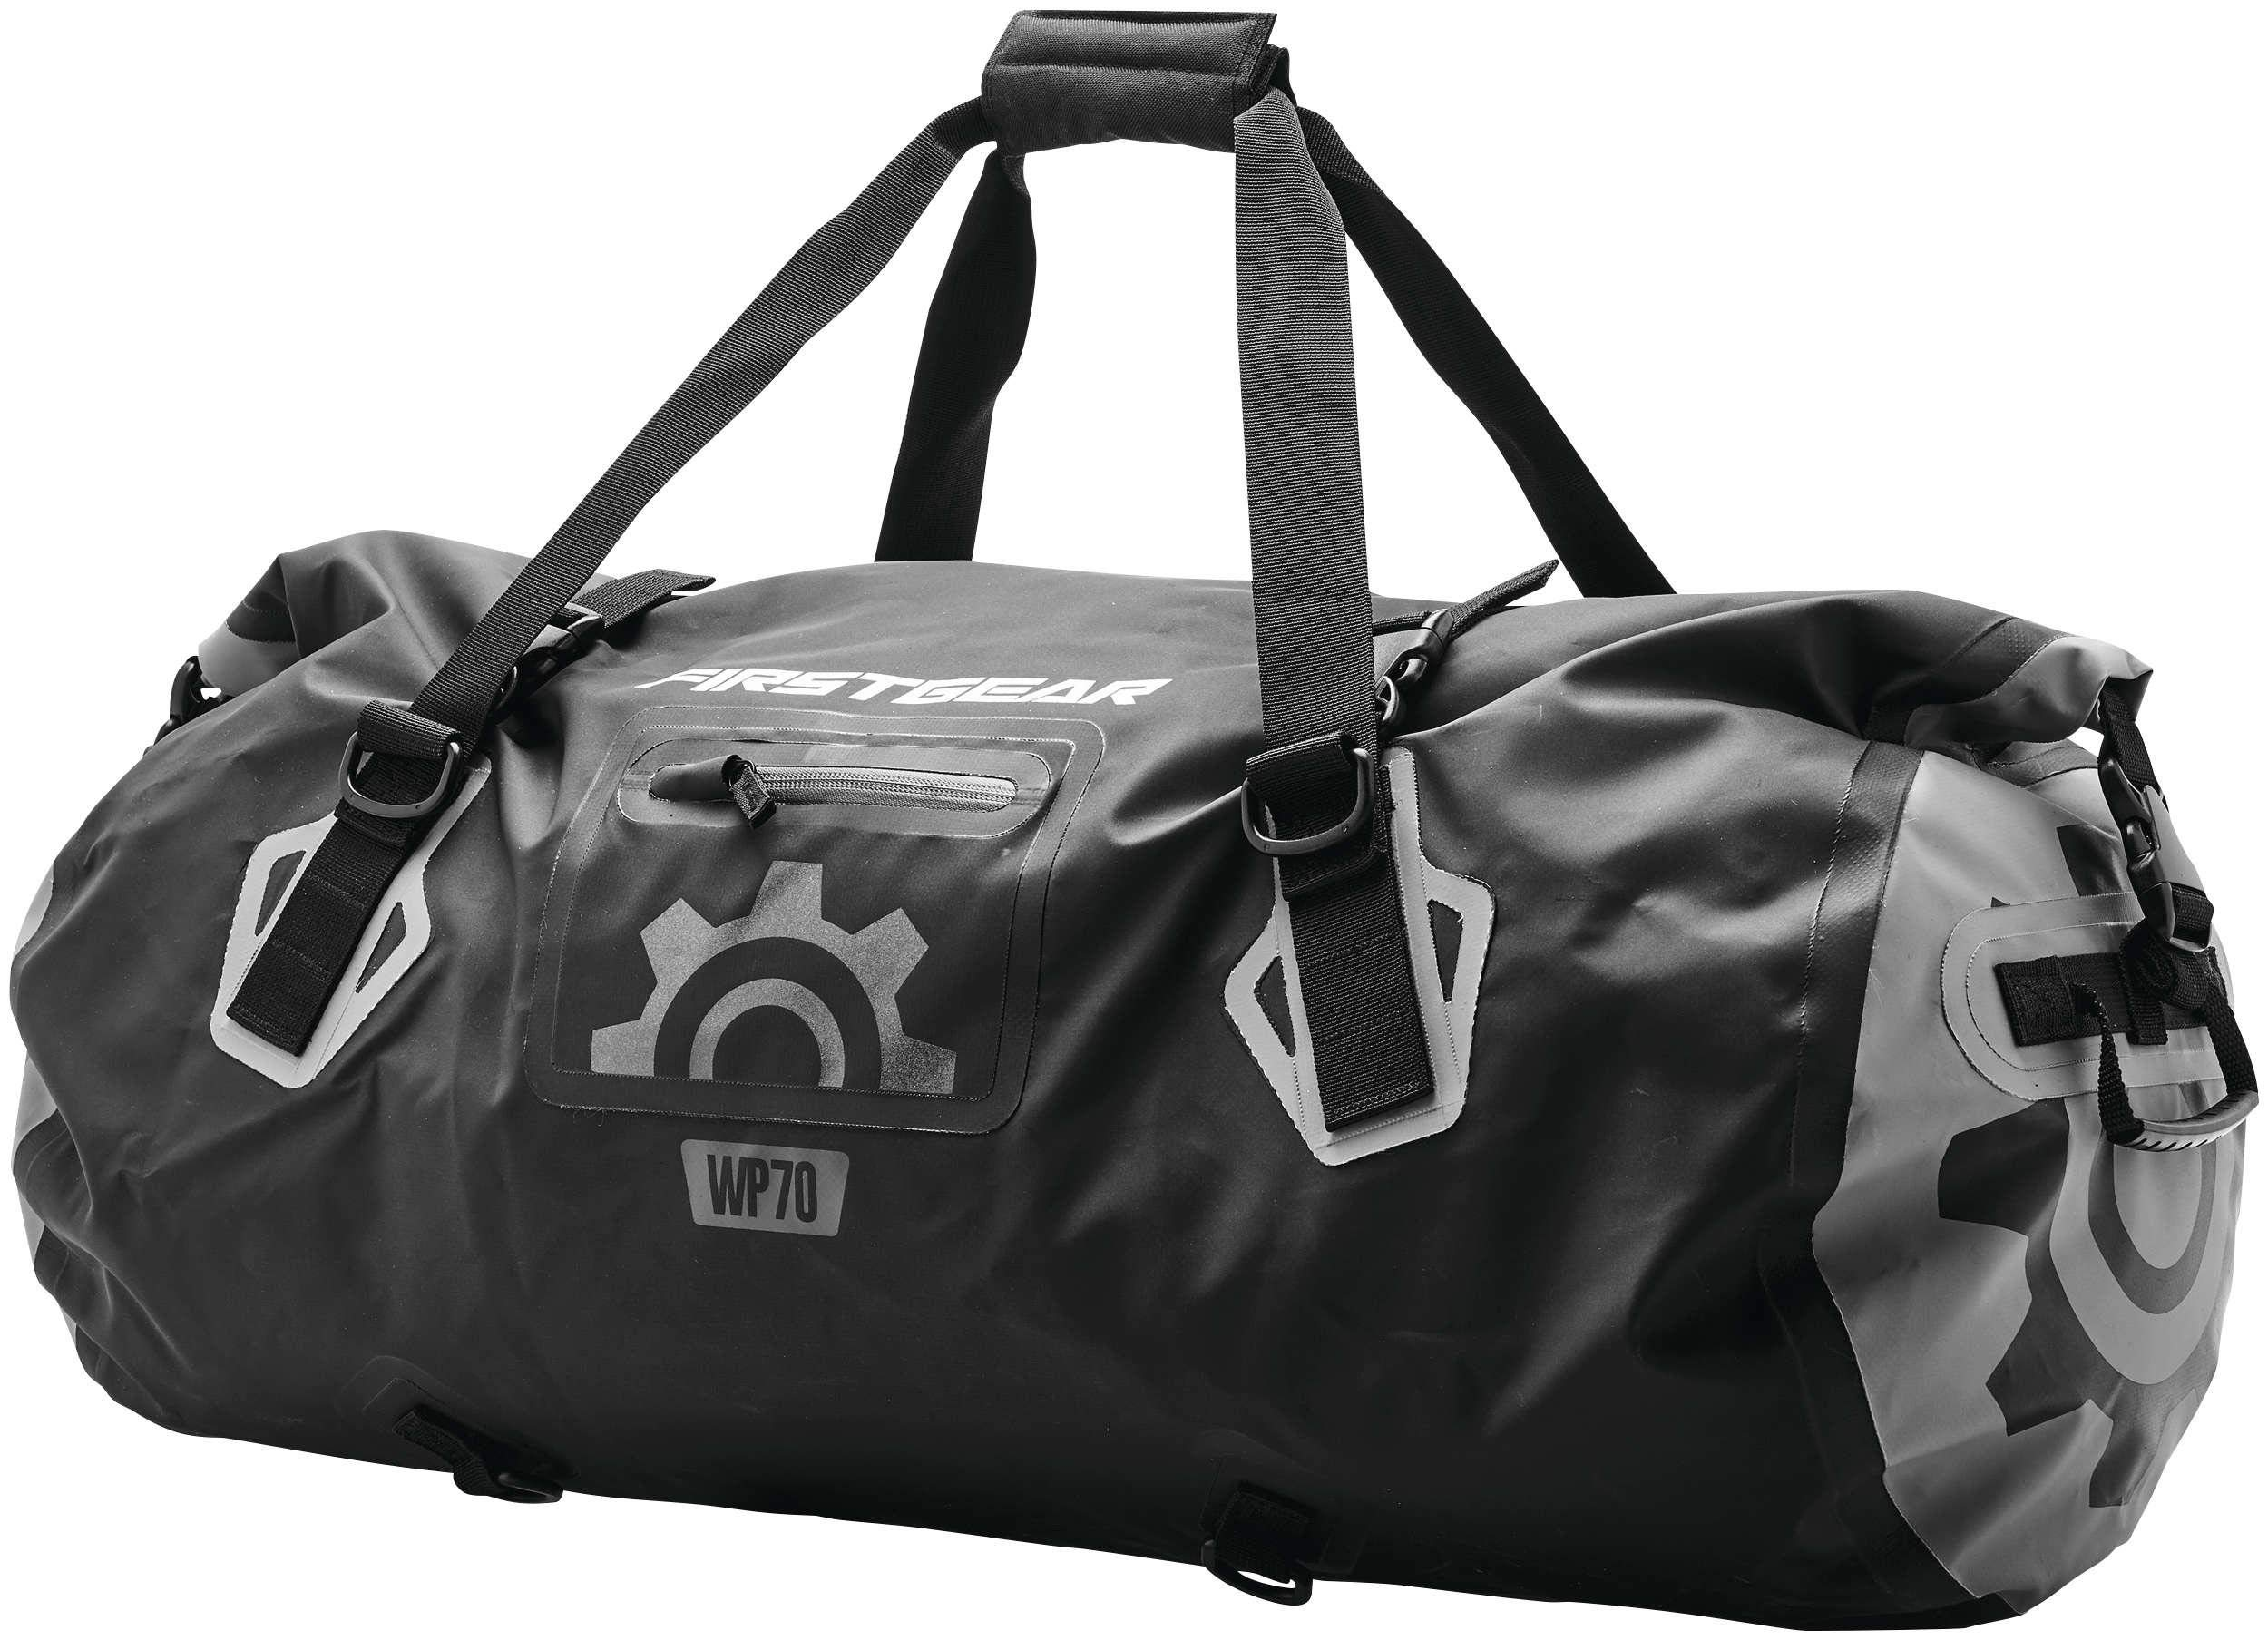 FirstGear Torrent 70L Waterproof Duffel Bag (More Size Options)